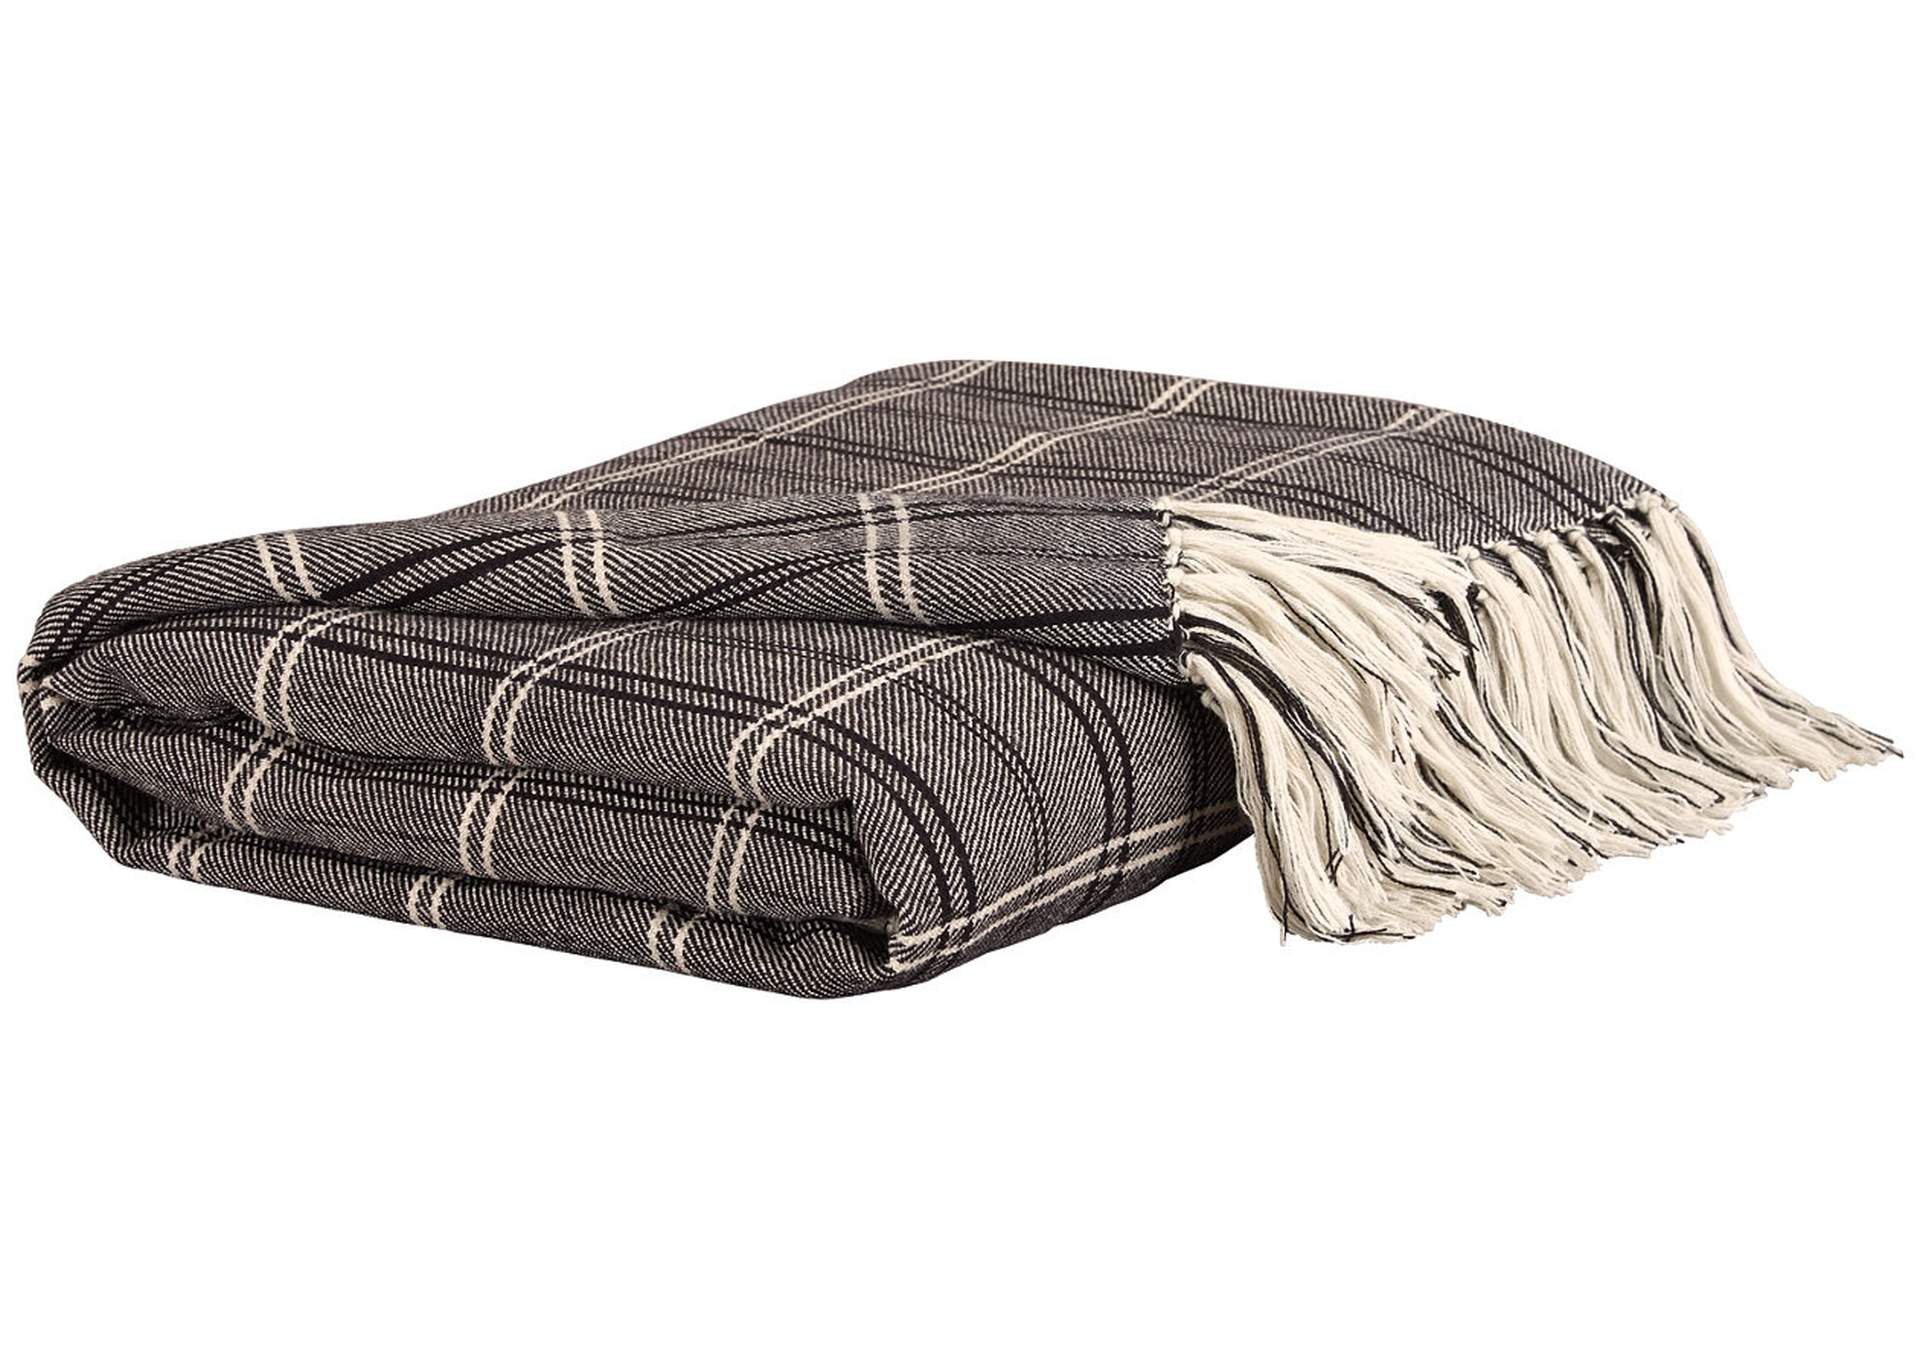 Luis Black Throw (Set of 3),Direct To Consumer Express